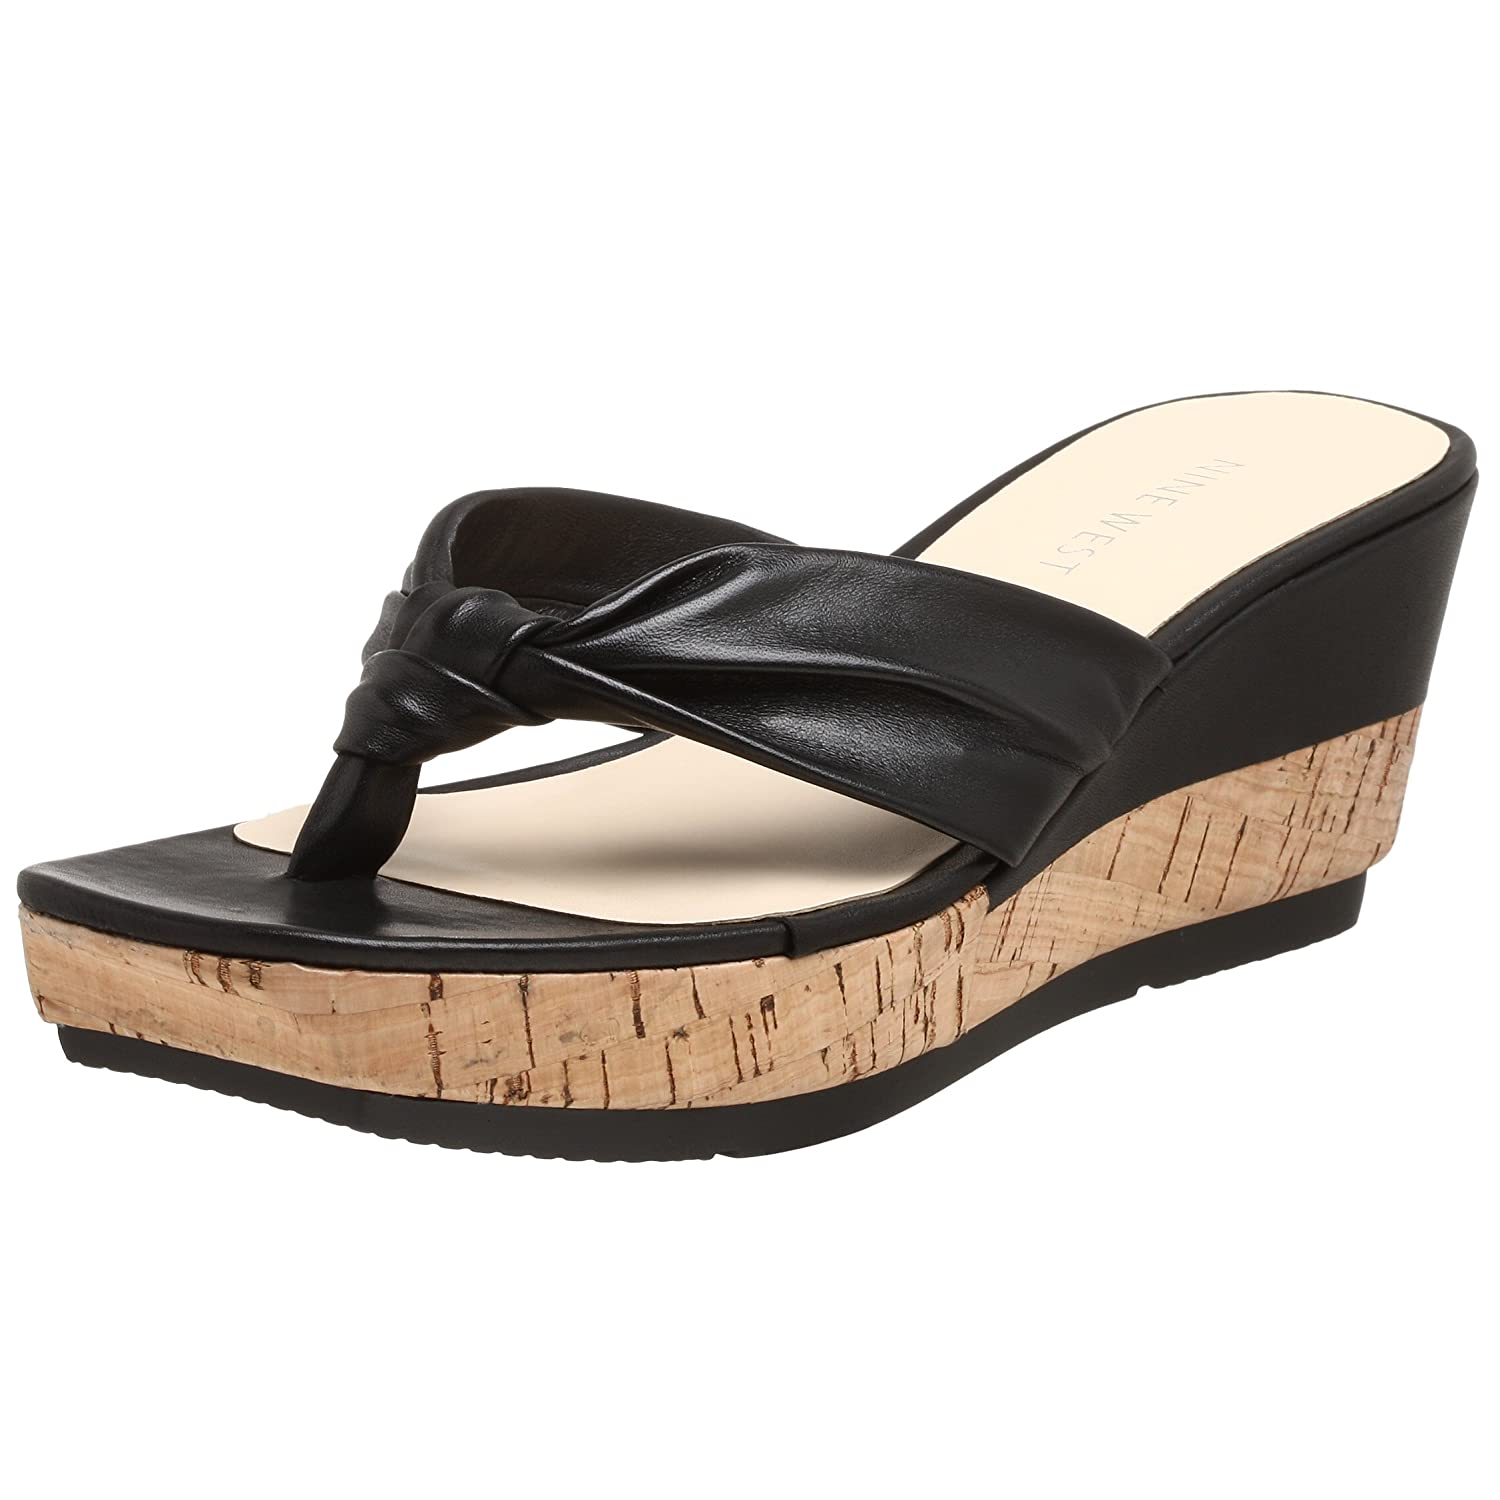 Nine West Women's Zarend Wedge Platform Thong - Free Overnight Shipping & Return Shipping: Endless.com from endless.com